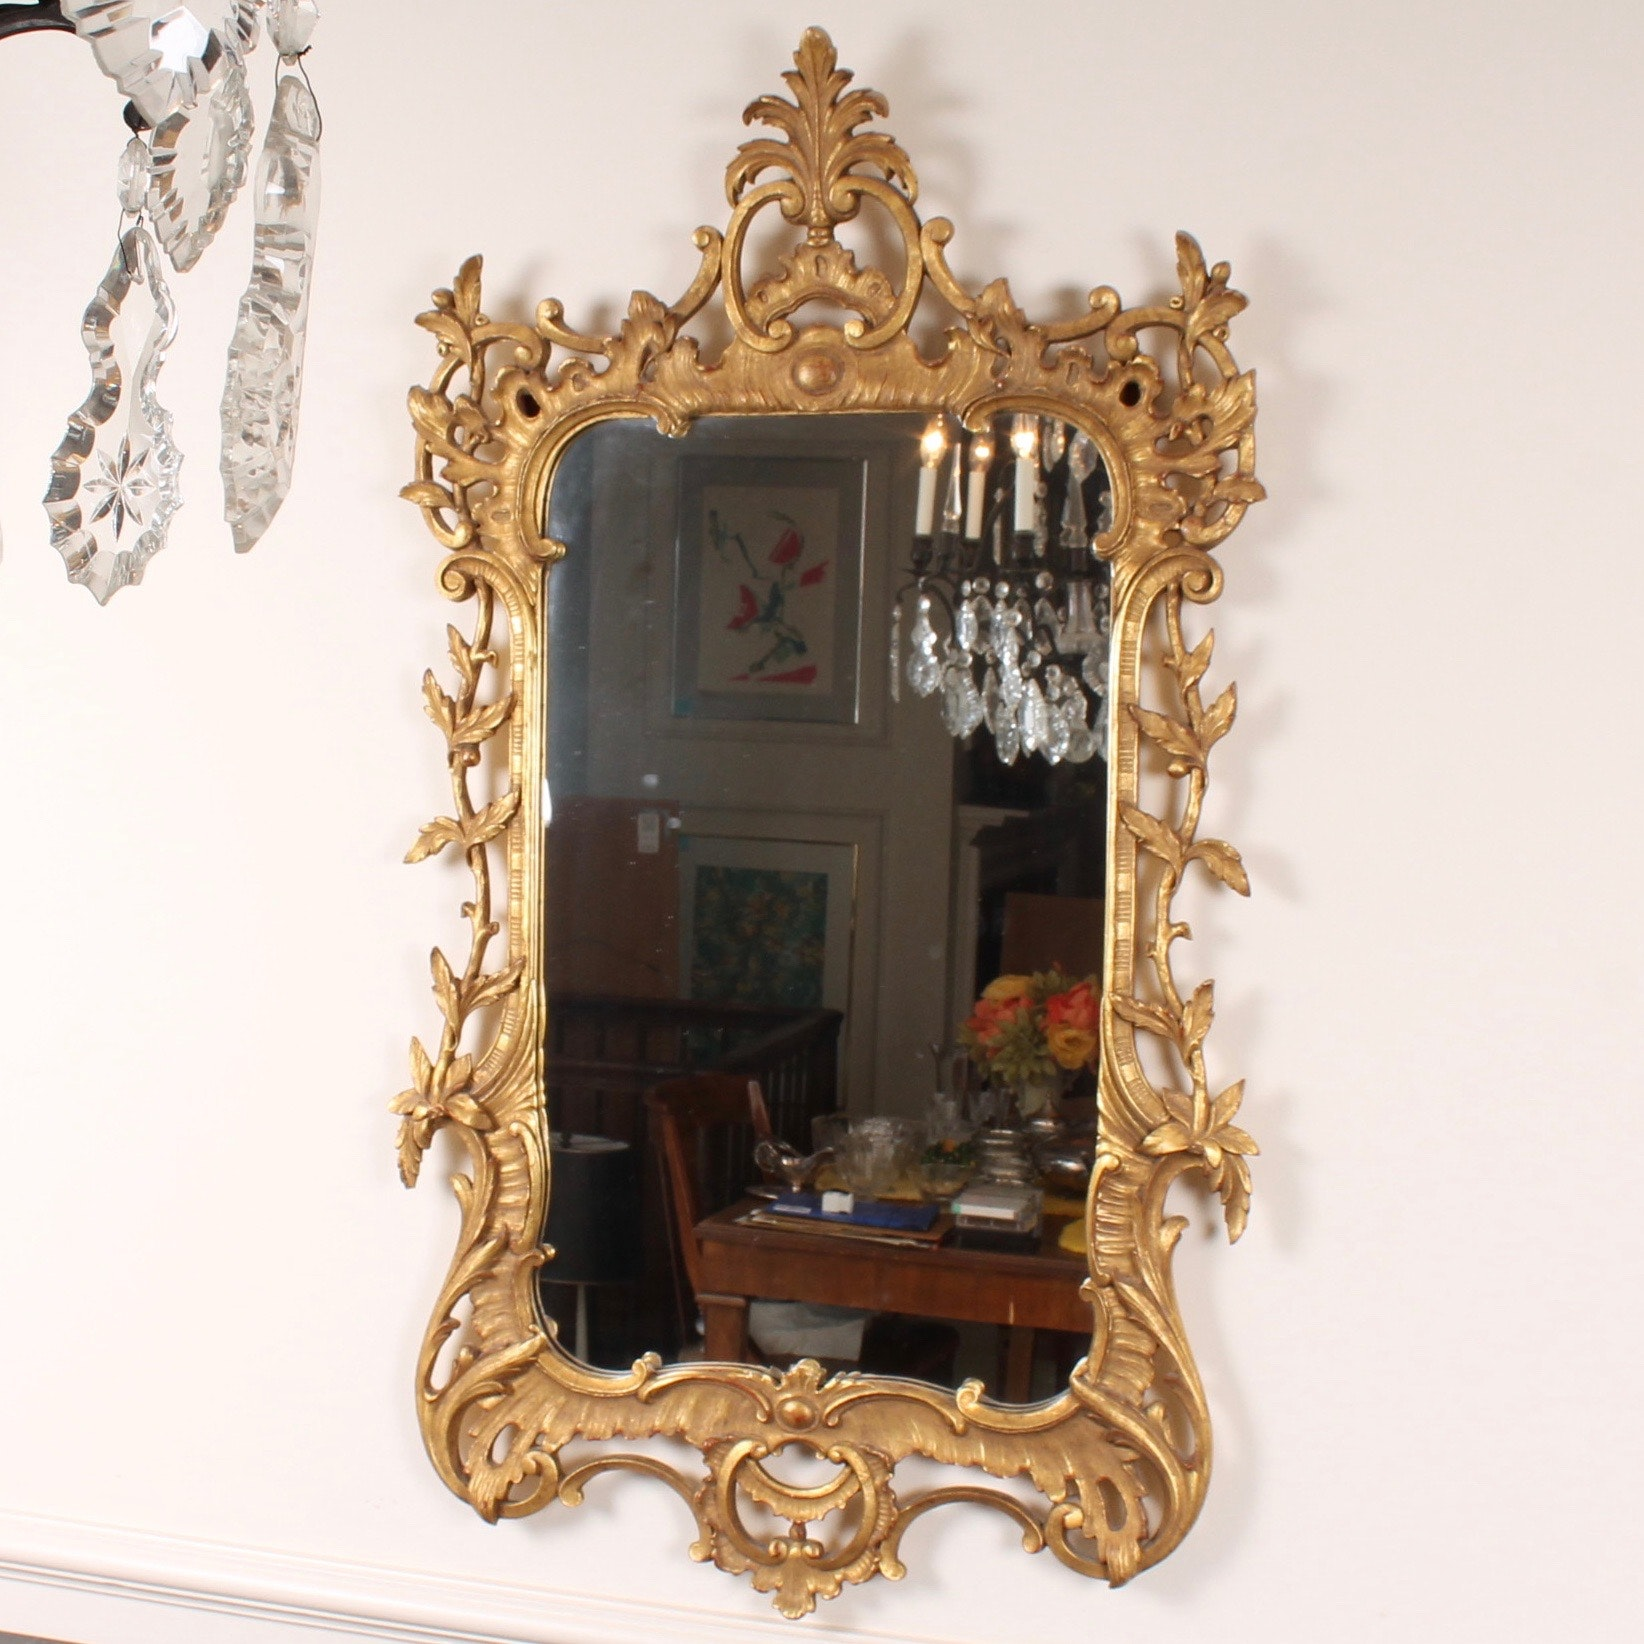 Antique French Hand-Carved Gilt Wall Mirror